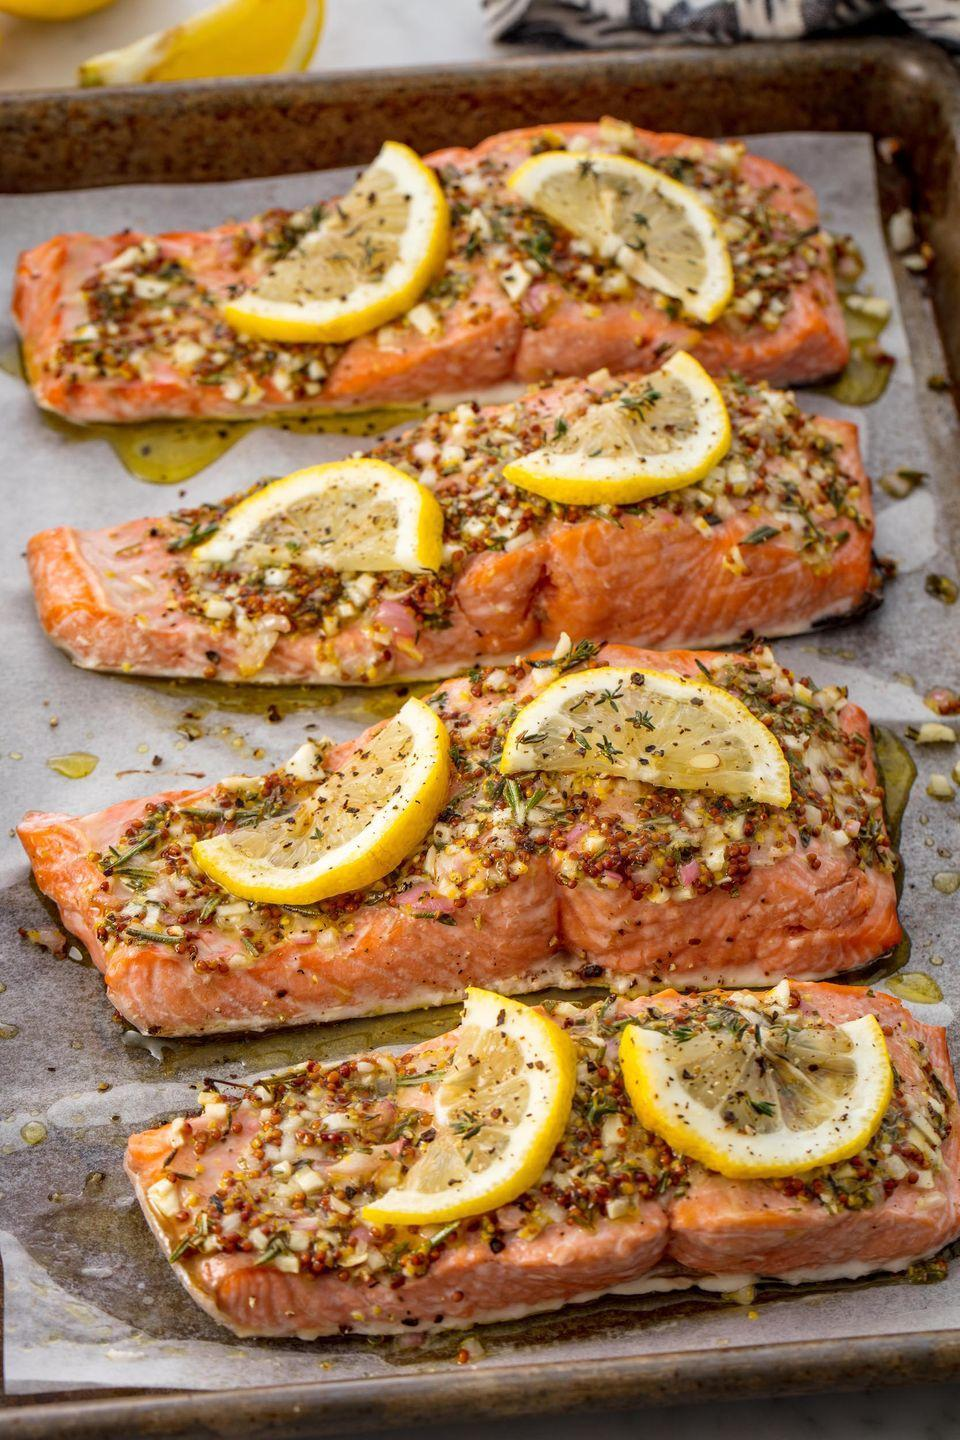 "<p>An extremely addicting and easy salmon recipe for your arsenal.</p><p>Get the recipe from <a href=""https://www.delish.com/cooking/recipe-ideas/recipes/a55654/best-broiled-salmon-recipe/"" rel=""nofollow noopener"" target=""_blank"" data-ylk=""slk:Delish"" class=""link rapid-noclick-resp"">Delish</a>.</p>"